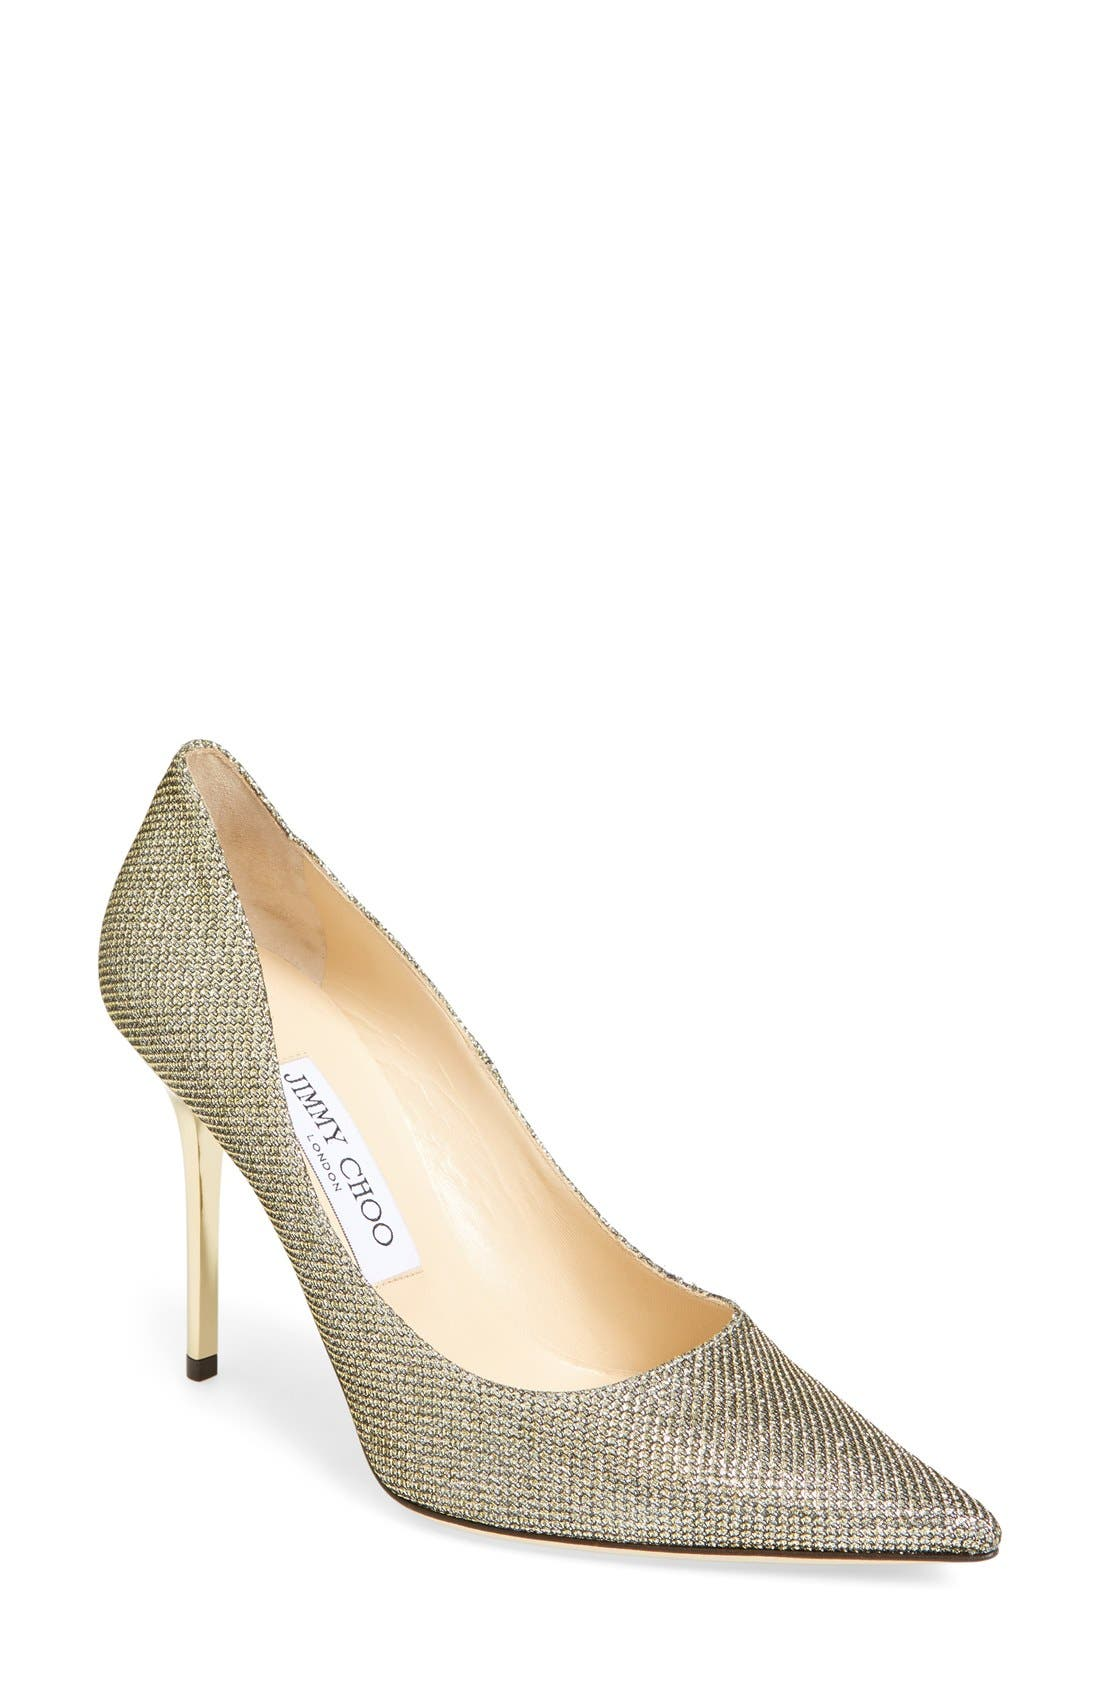 Main Image - Jimmy Choo 'Abel' Pointy Toe Pump (Women)